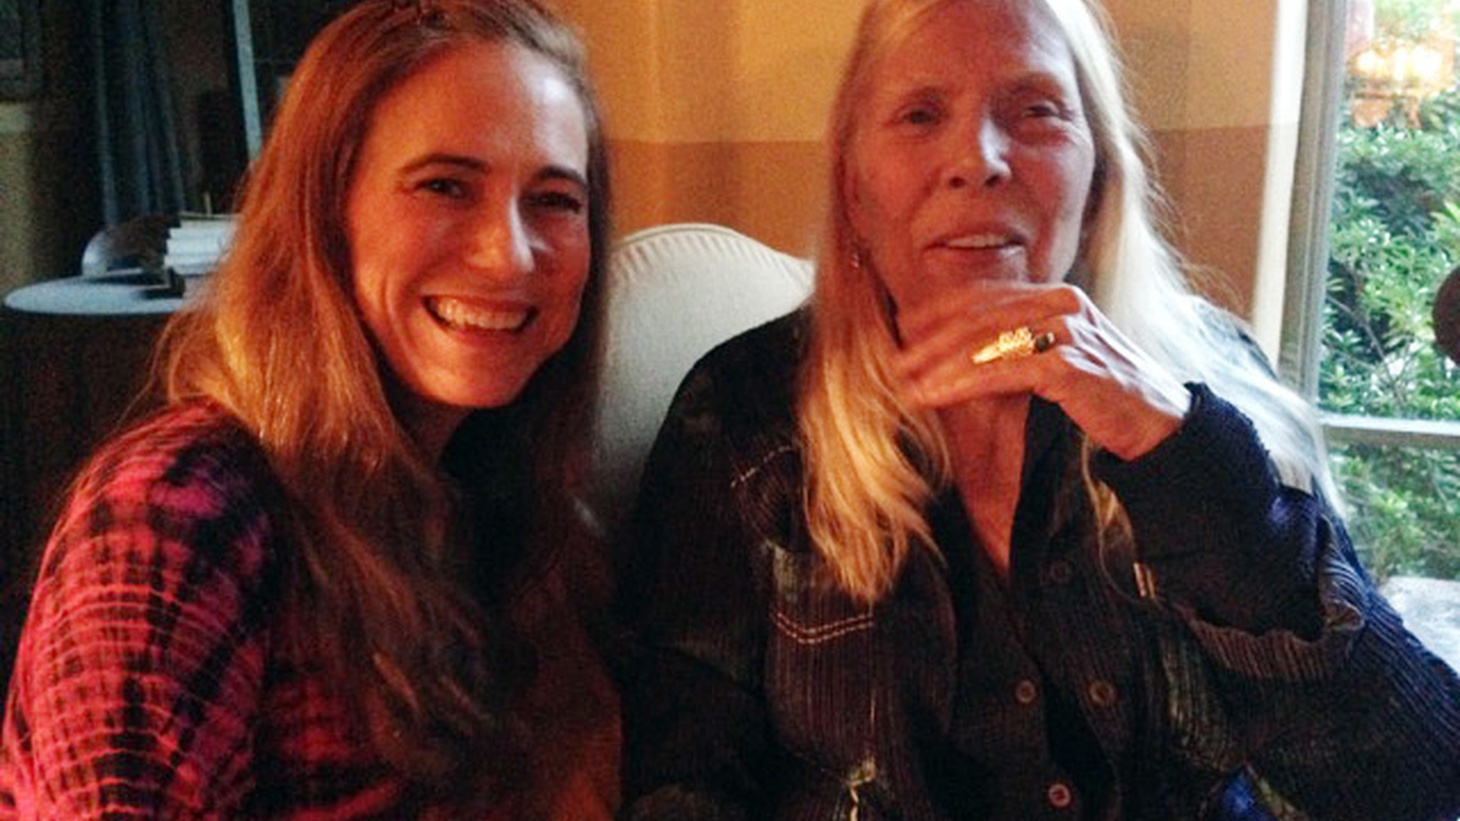 On the eve of Valentine's Day, we explore love with a conversation between Joni Mitchell and host Liza Richardson on Morning Becomes Eclectic in the 11 o'clock hour.